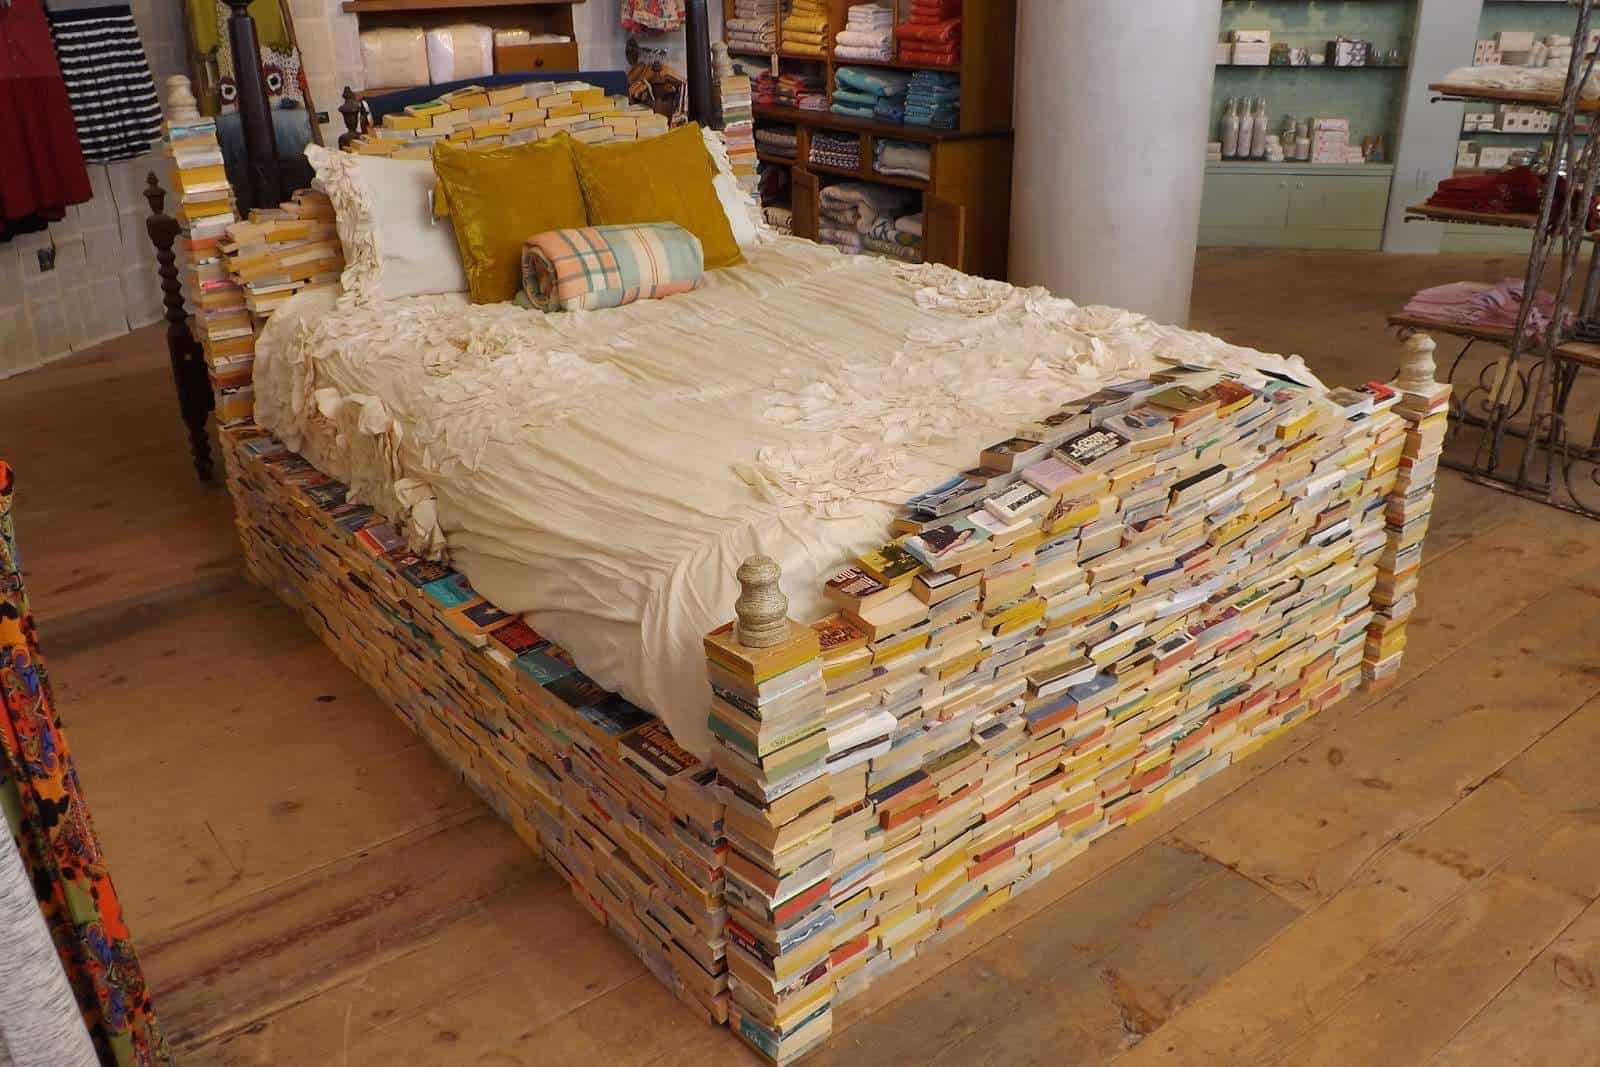 Books bedframe recyclart How to store books in a small bedroom